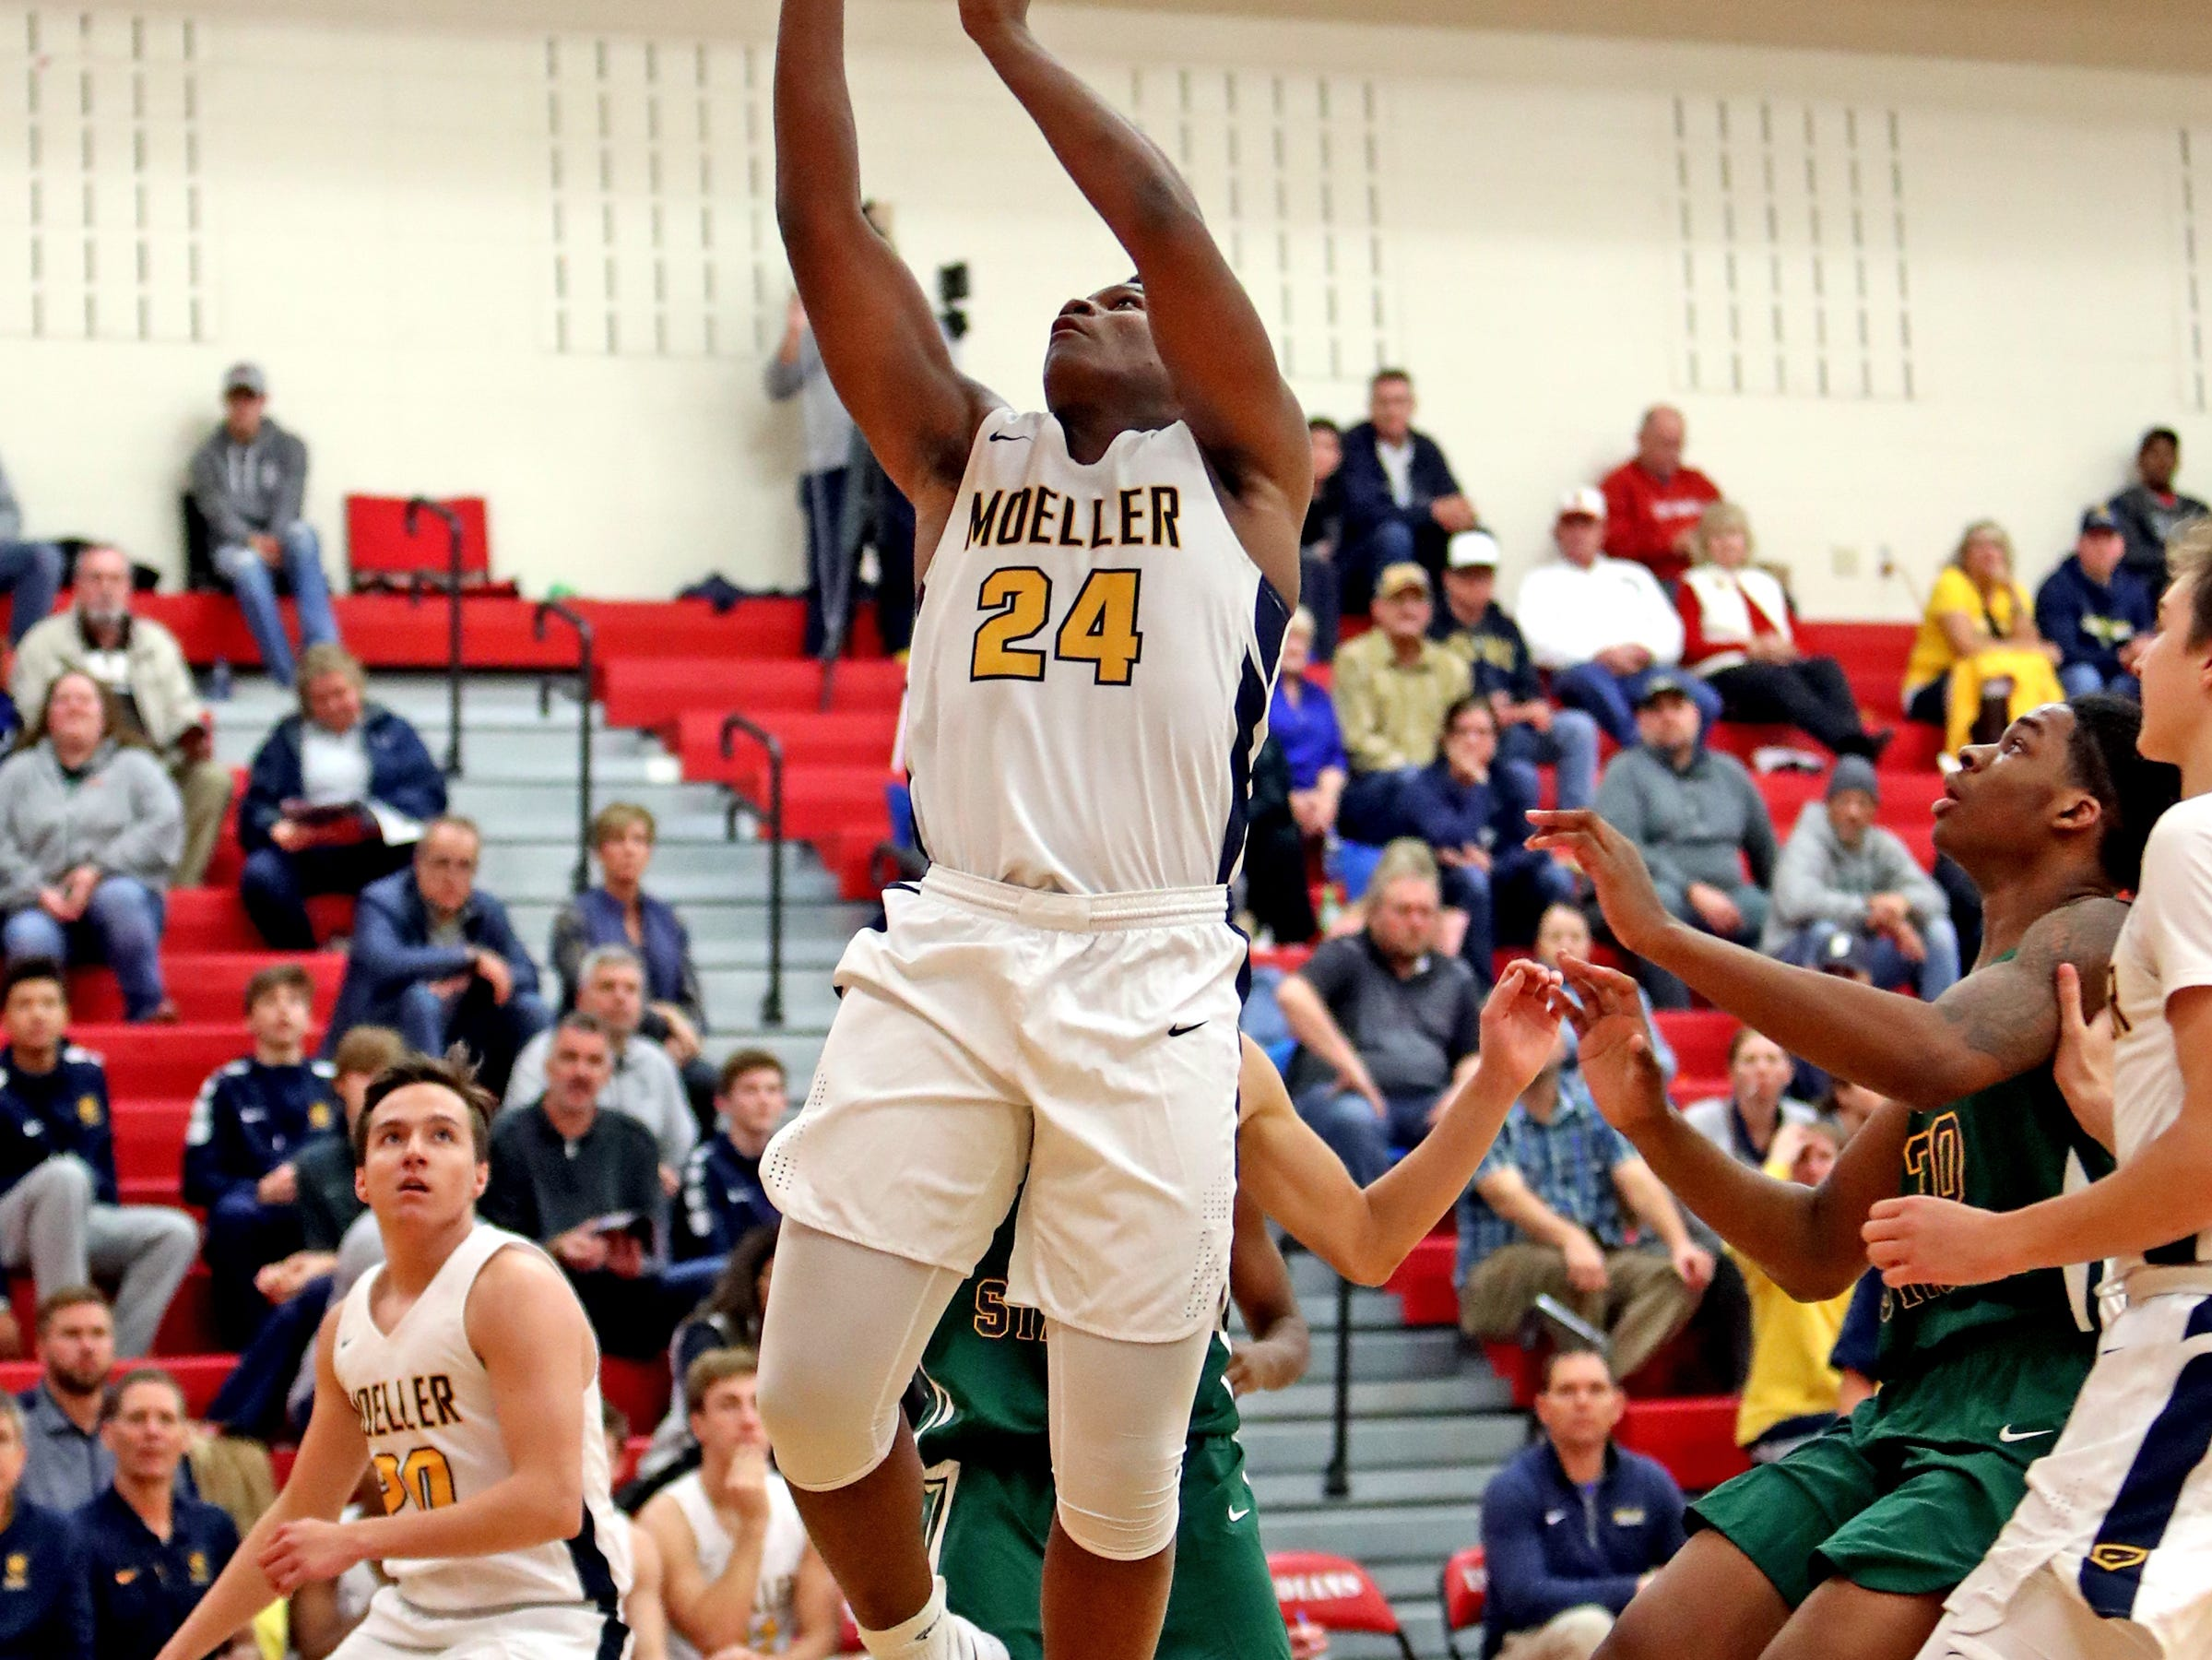 Moeller forward Alex Williams scores from the paint at the Ohio Valley Hoops Classic at Hillsboro High School. Moeller defeated Bryan Station 85-42.